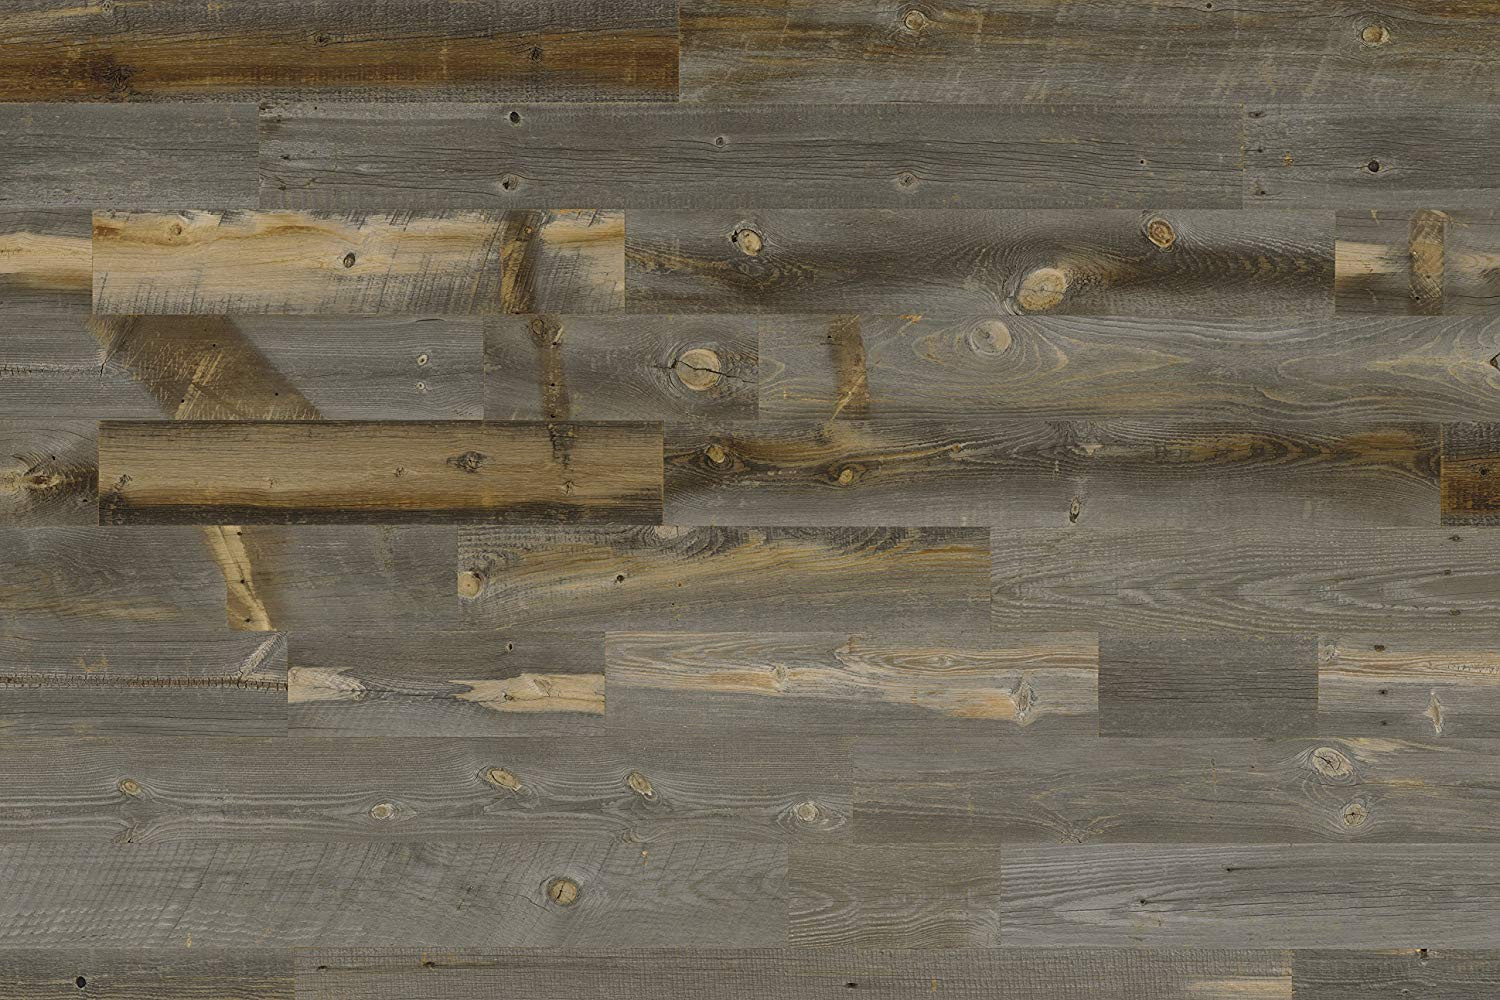 canadian hardwood flooring manufacturers list of amazon com stikwood reclaimed weathered wood silver gray brown 20 in amazon com stikwood reclaimed weathered wood silver gray brown 20 square feet easy peel and stick application baby